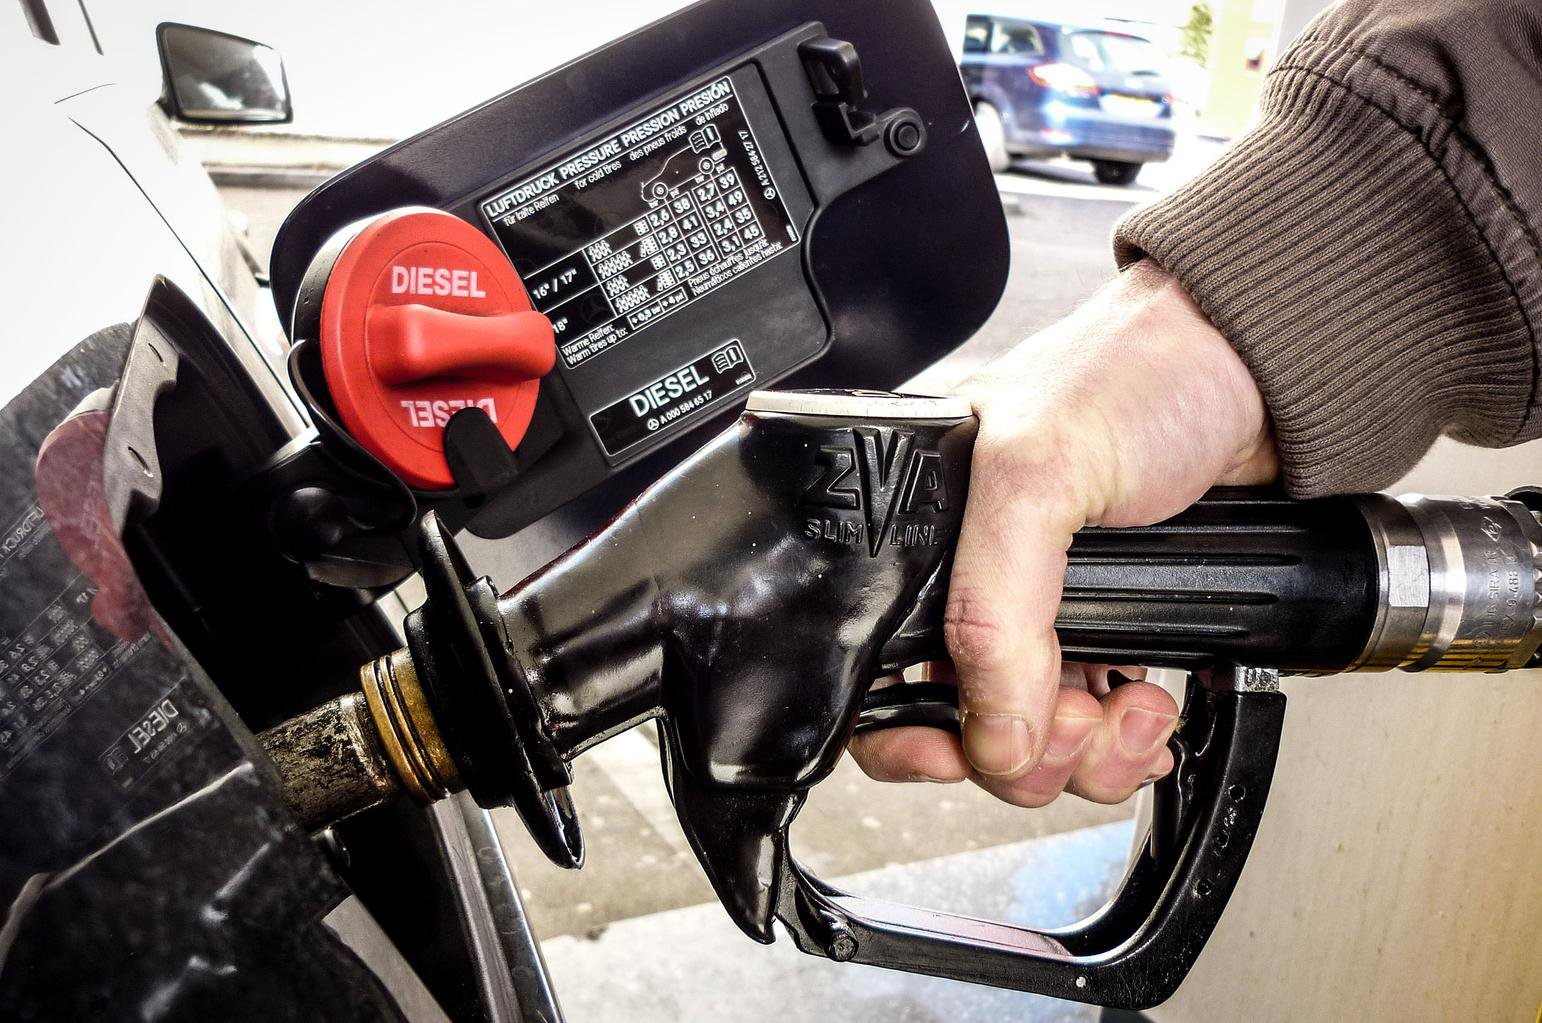 Diesel prices to rise following Brexit vote